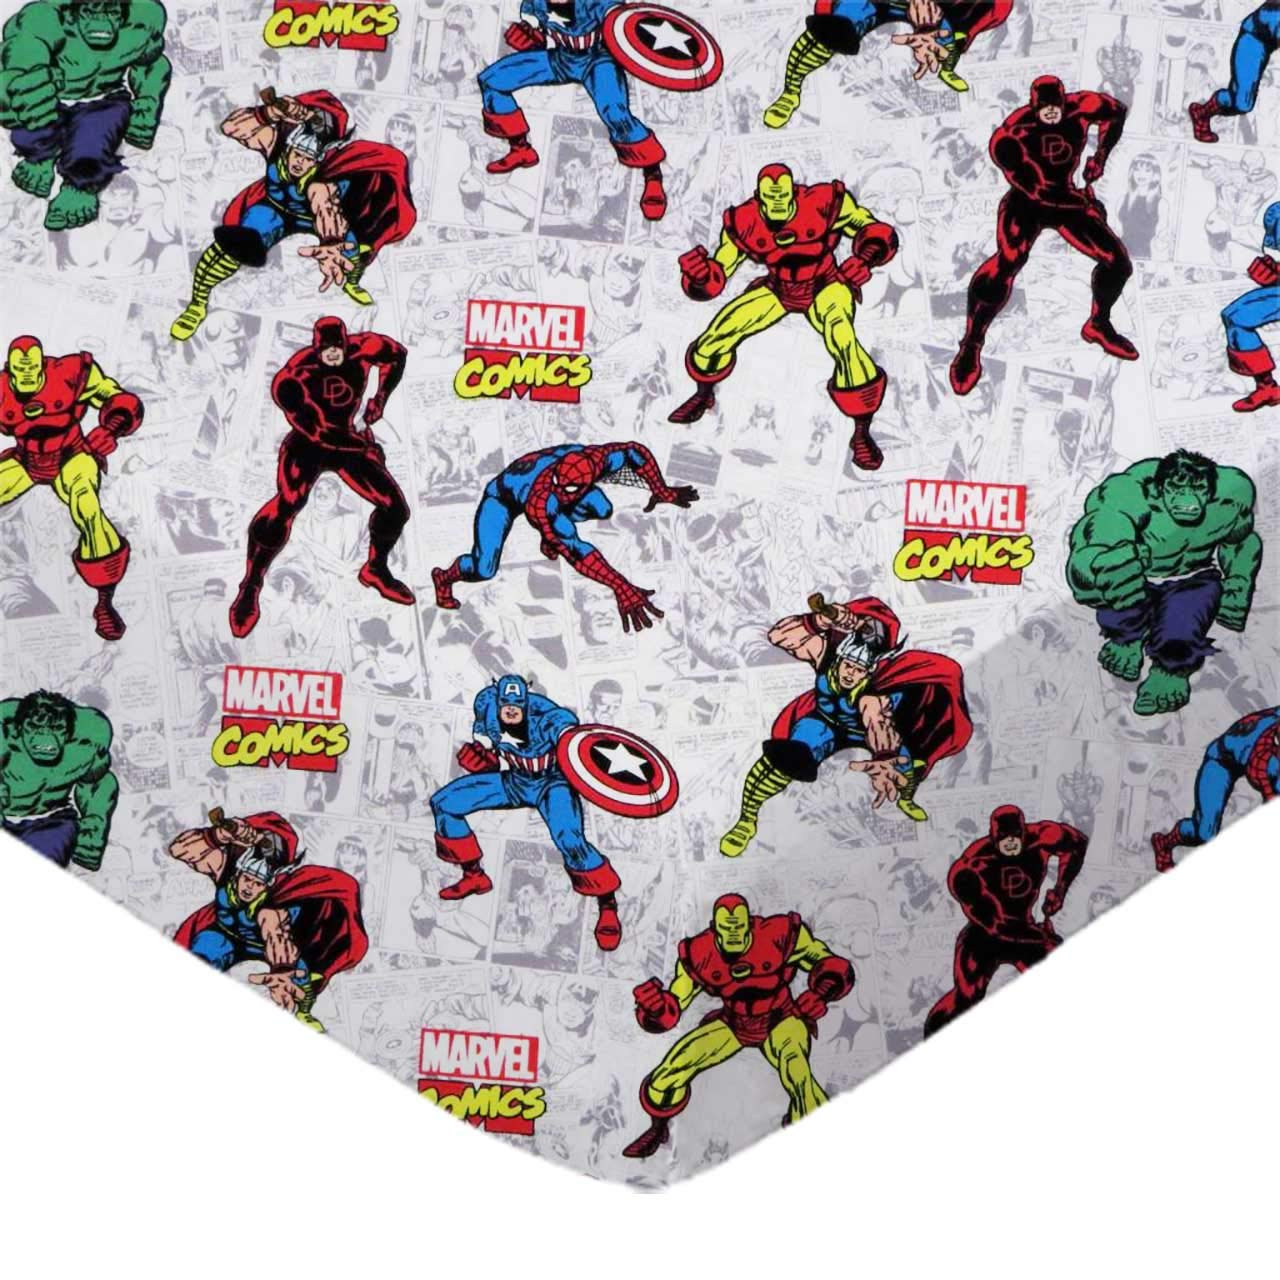 SheetWorld 100% Cotton Percale Crib Sheet Set 28 x 52, Marvel Comics, Inlcudes 1 Fitted, 1 Flat, 1 Toddler Pillow Case, Made in USA by SHEETWORLD.COM